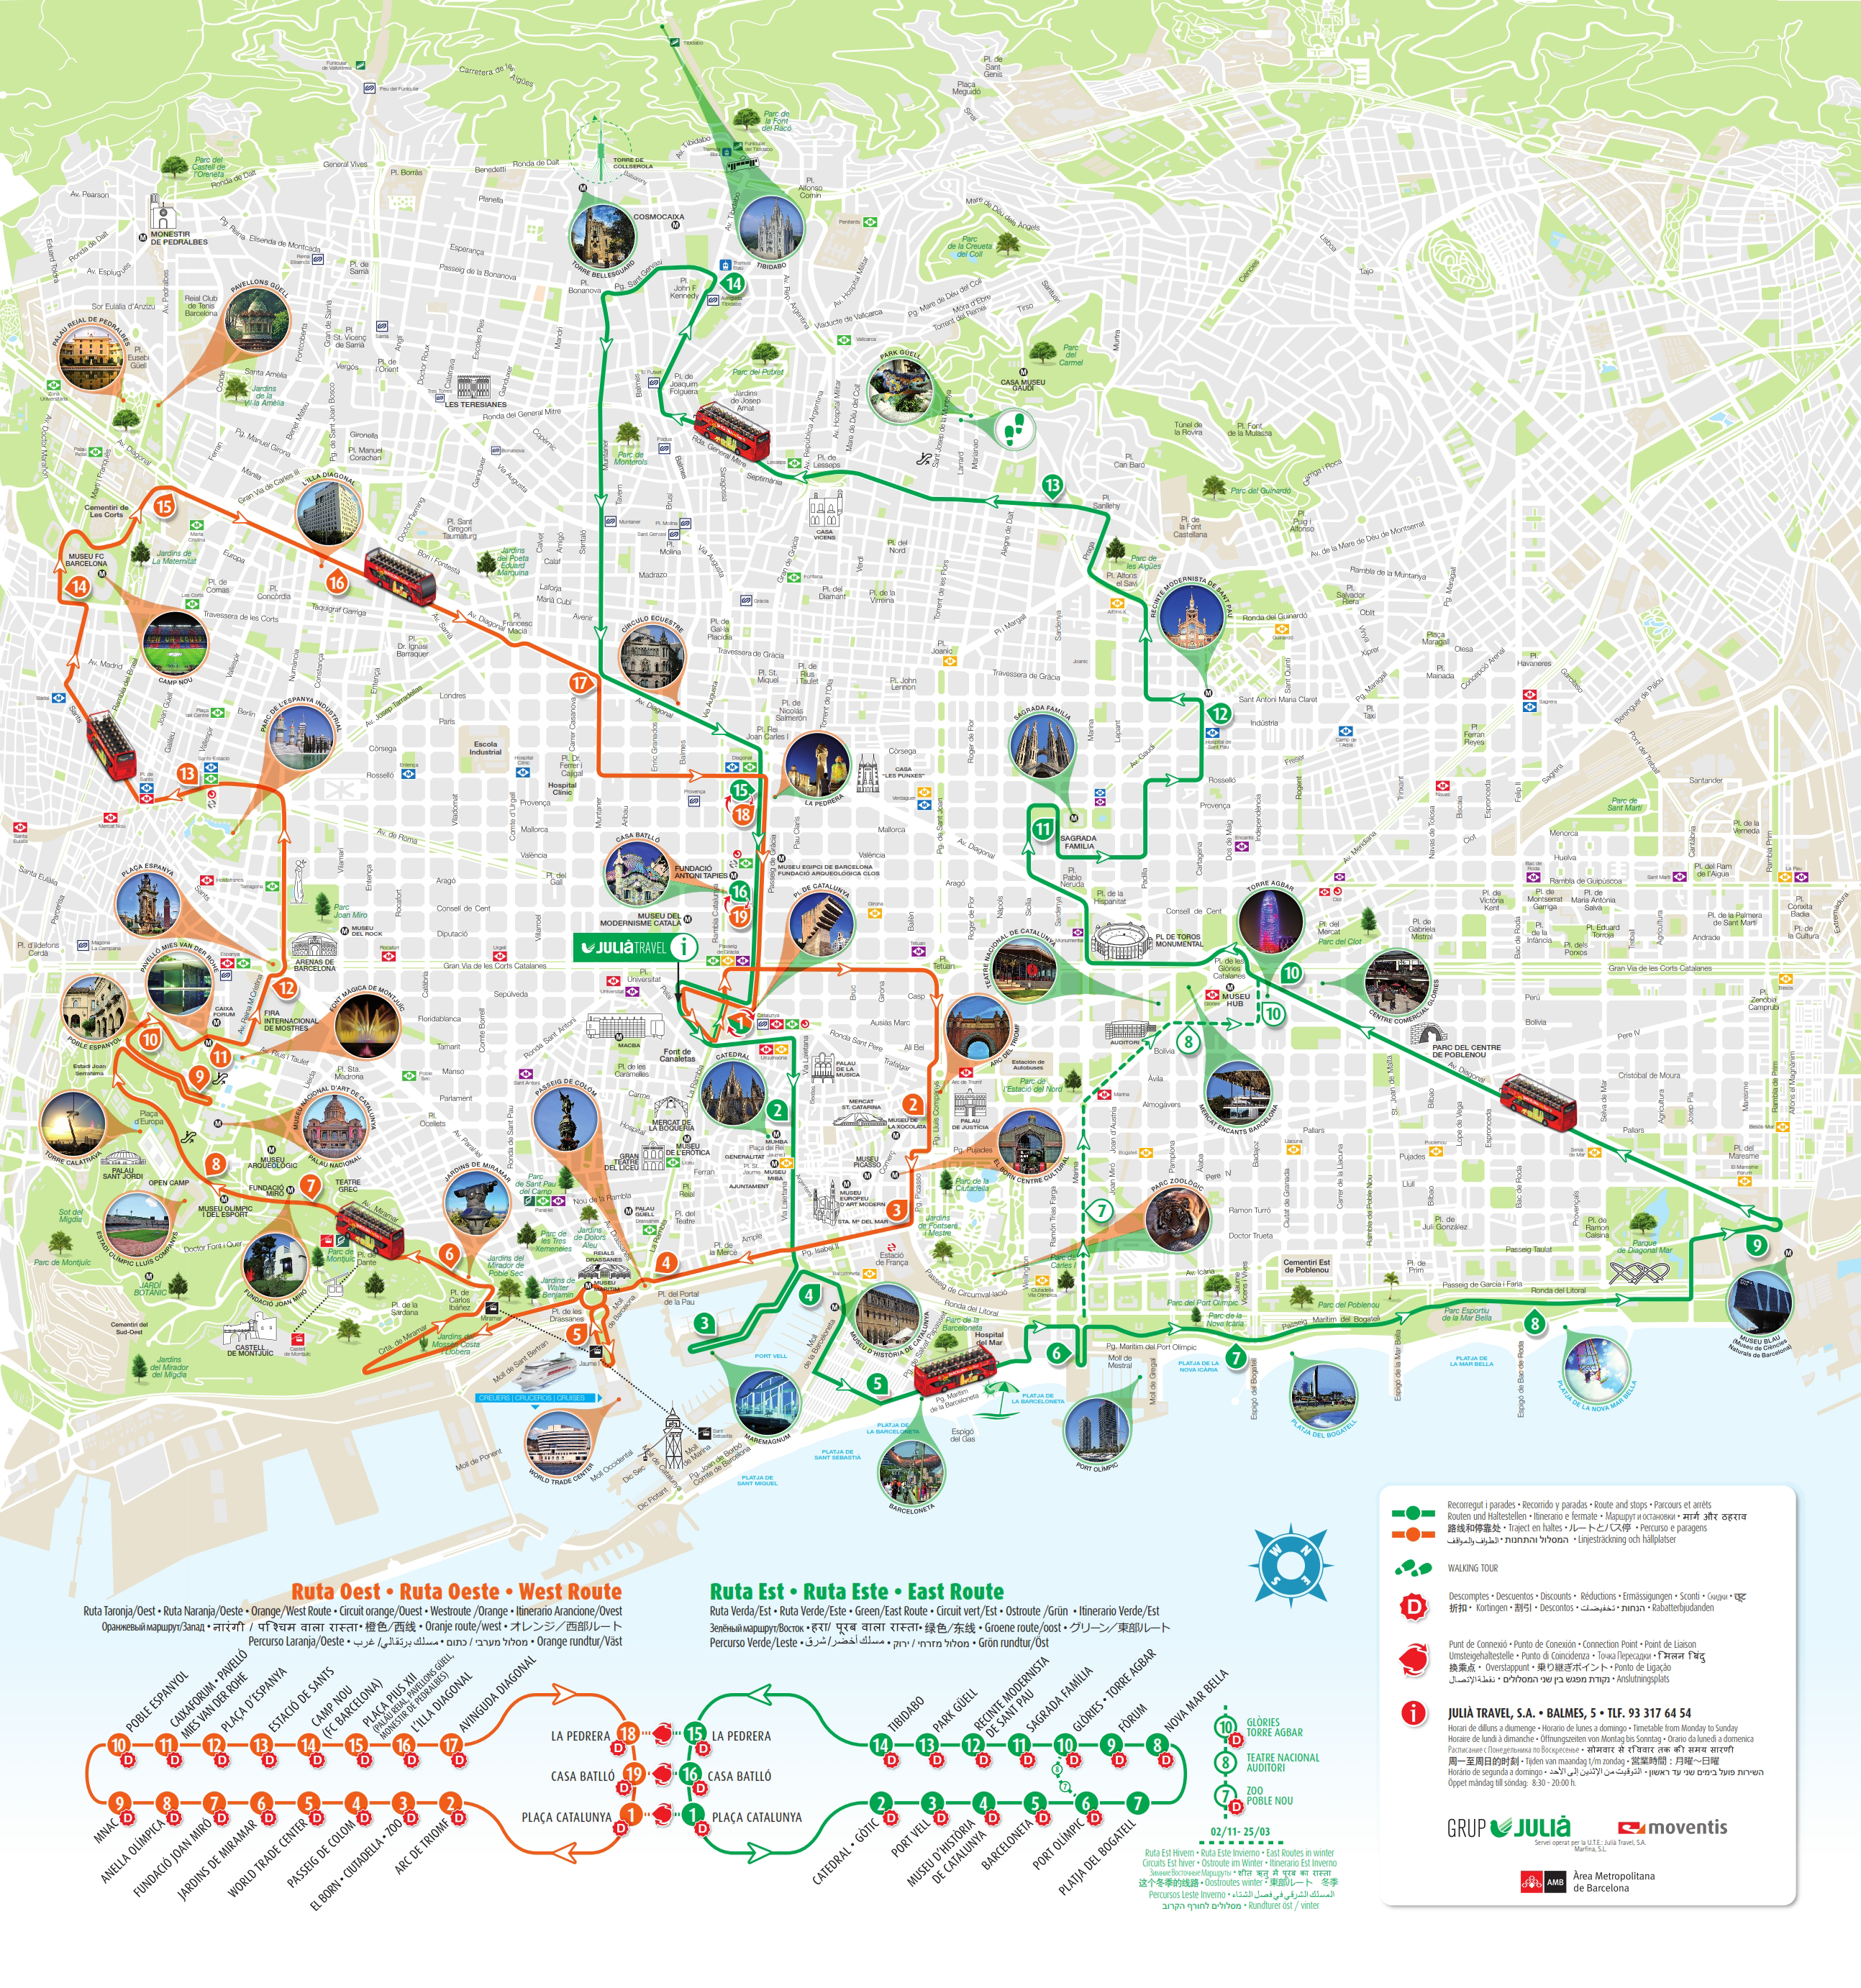 Barcelona Bus Tours, Reviews, Combo Deals 2019 | Hop-On Hop-Off on madrid paseo, madrid park, madrid night life,